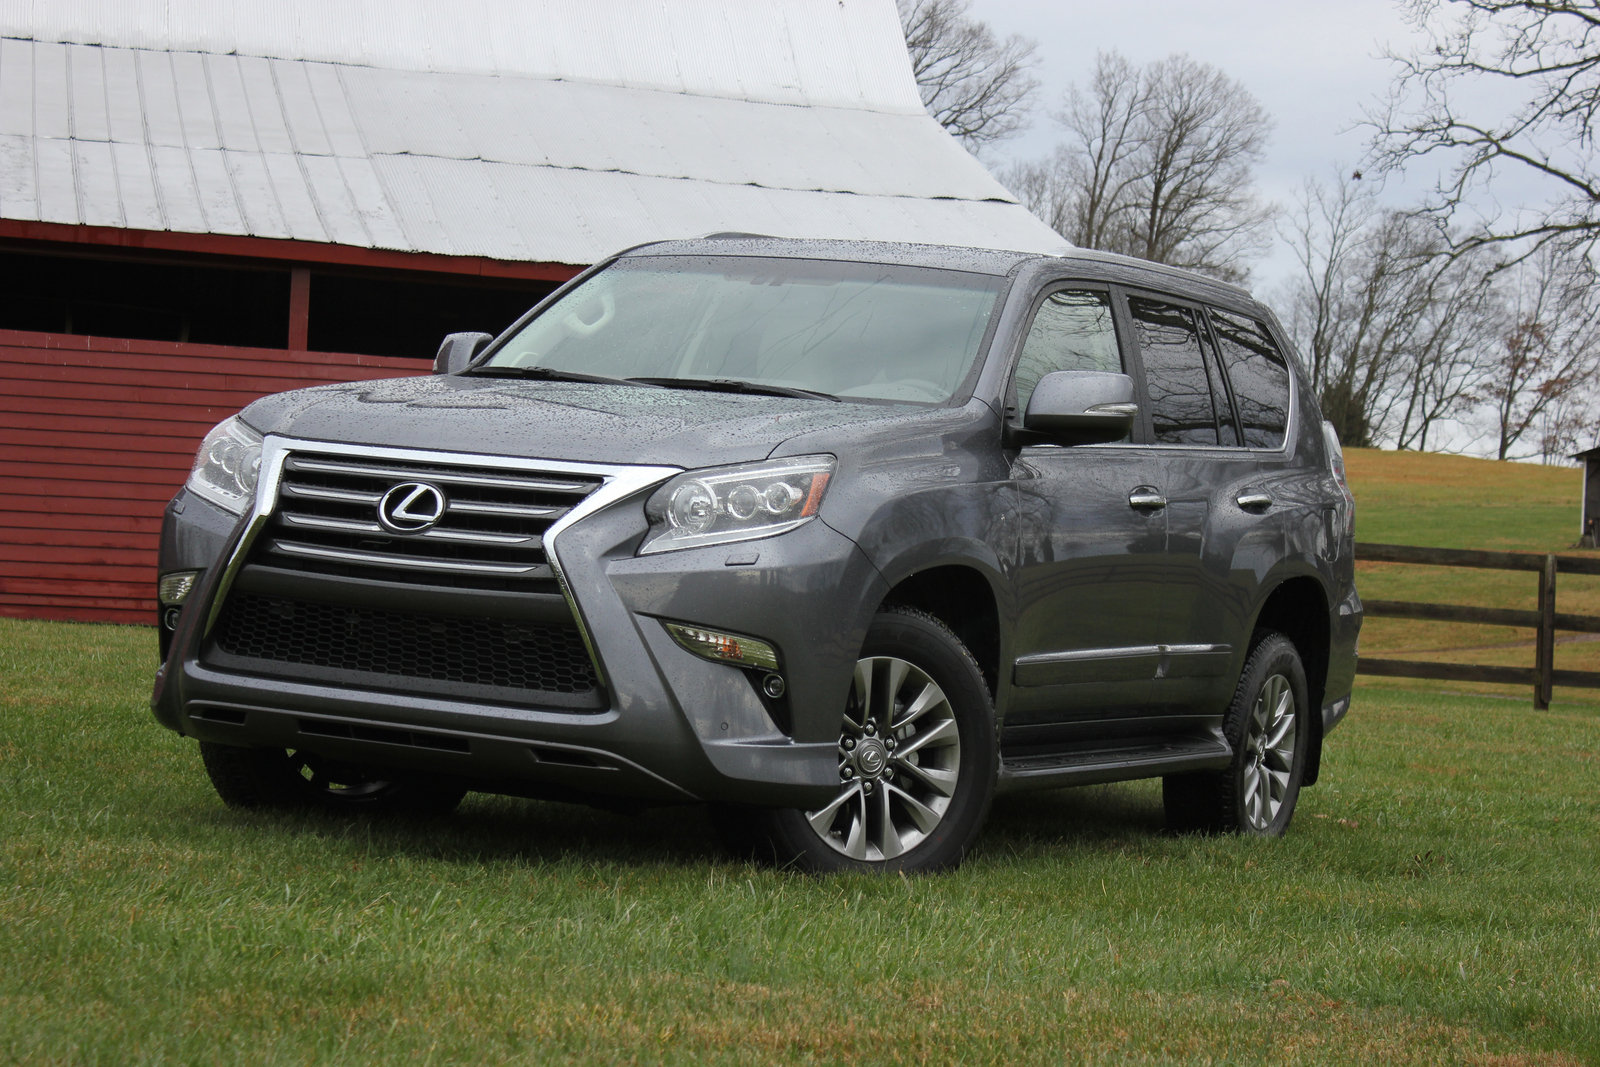 2015 lexus gx 460 driven picture 608259 car review top speed. Black Bedroom Furniture Sets. Home Design Ideas